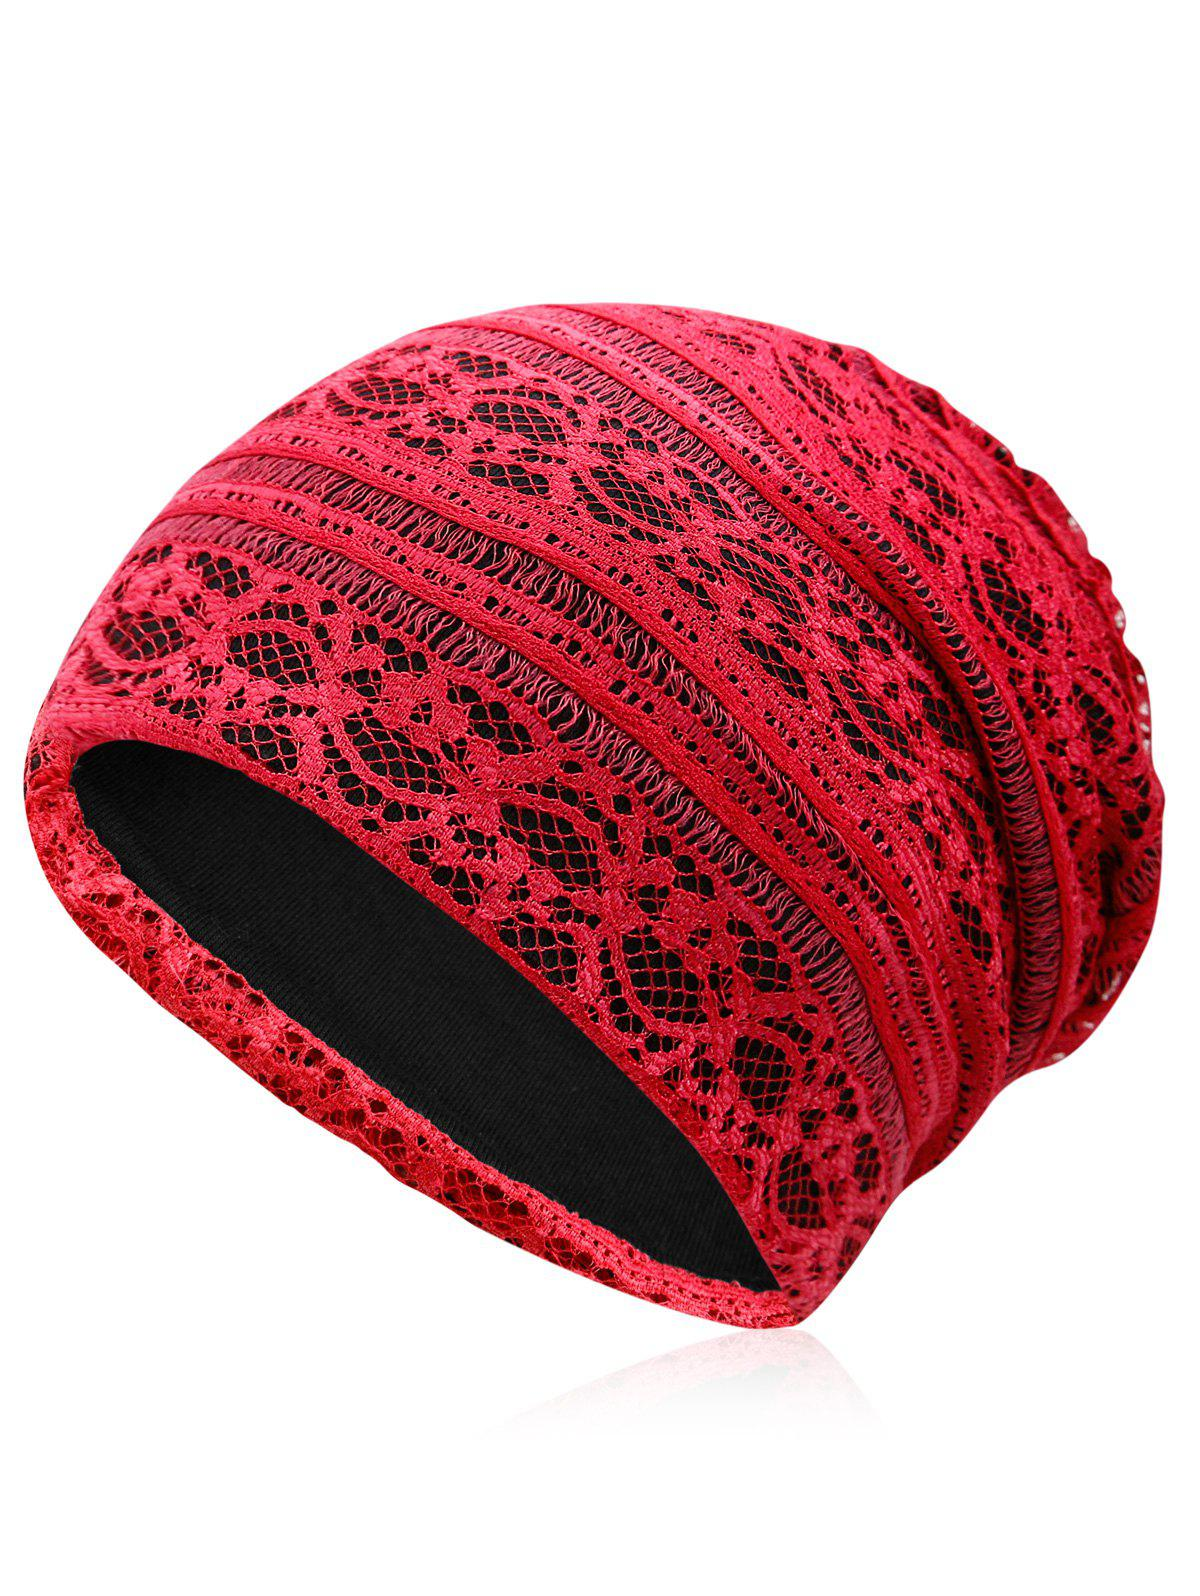 Latest Lightweight Soft Lace Slouchy Beanie